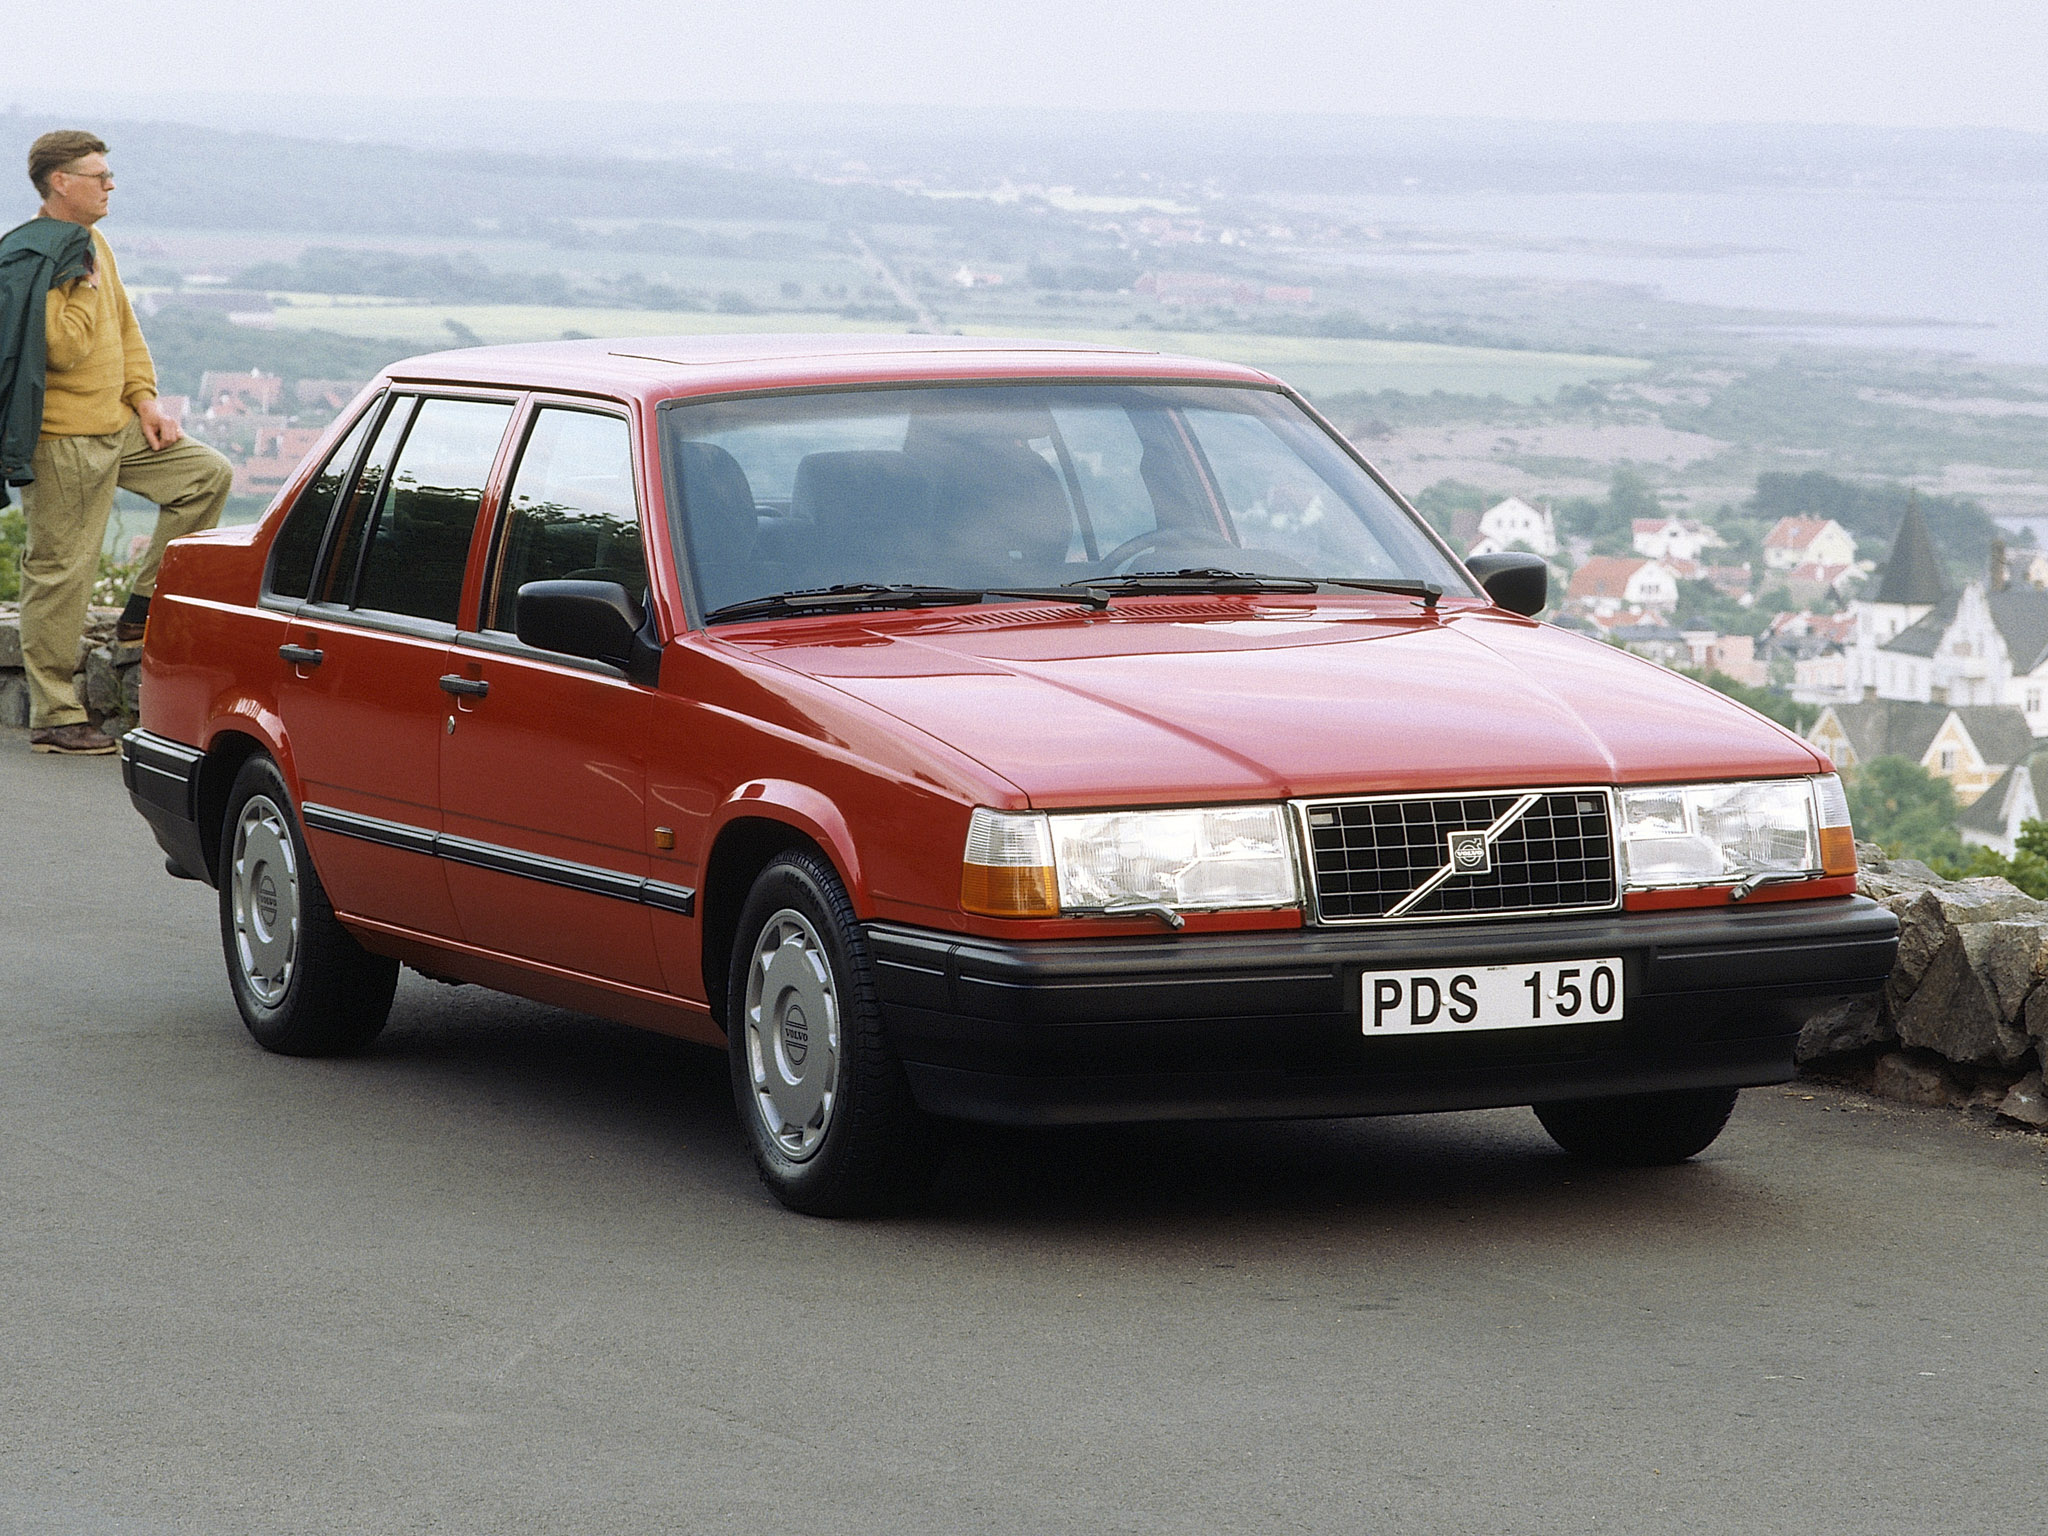 Bill Kidds Volvo >> Keiser's 1990 Red 740 Turbo Wagon - Turbobricks Forums